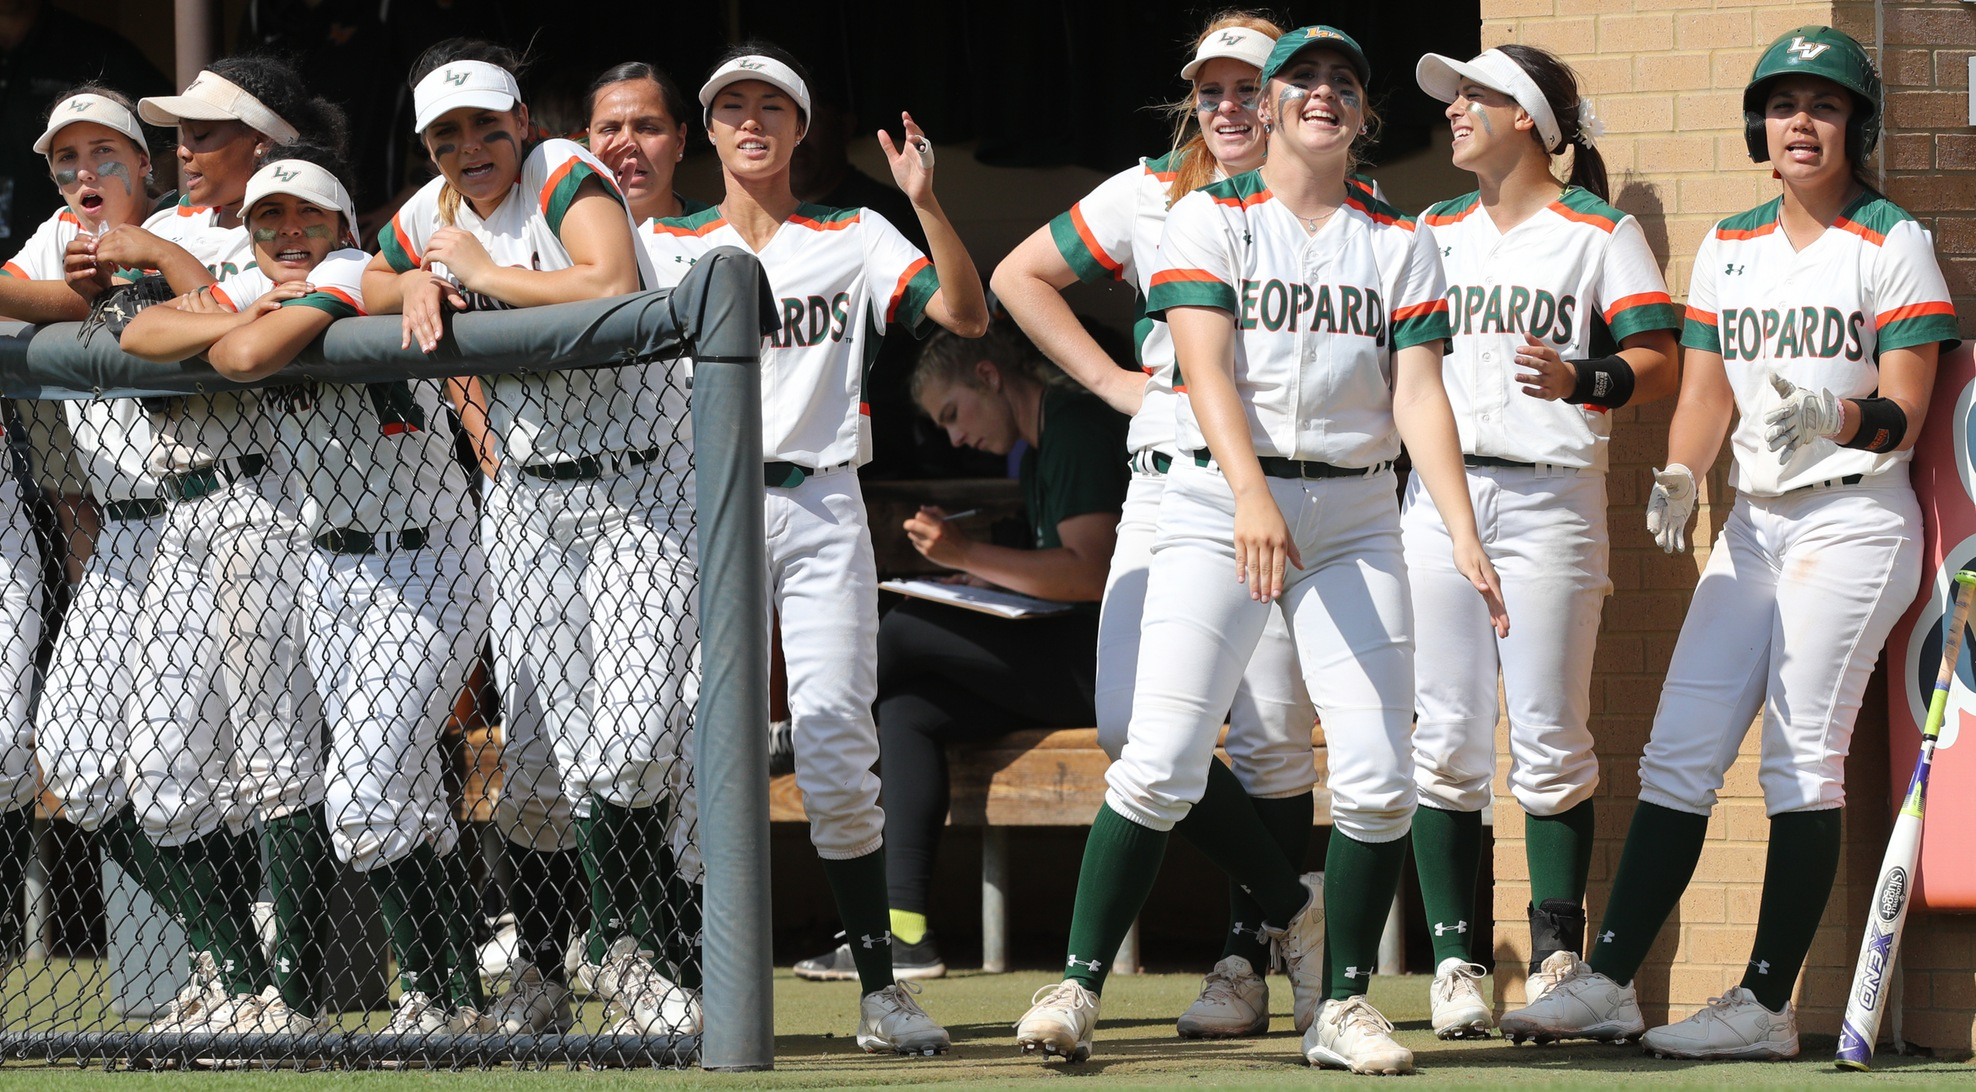 Softball falls to No. 5 Texas Lutheran, 7-3, in elimination game